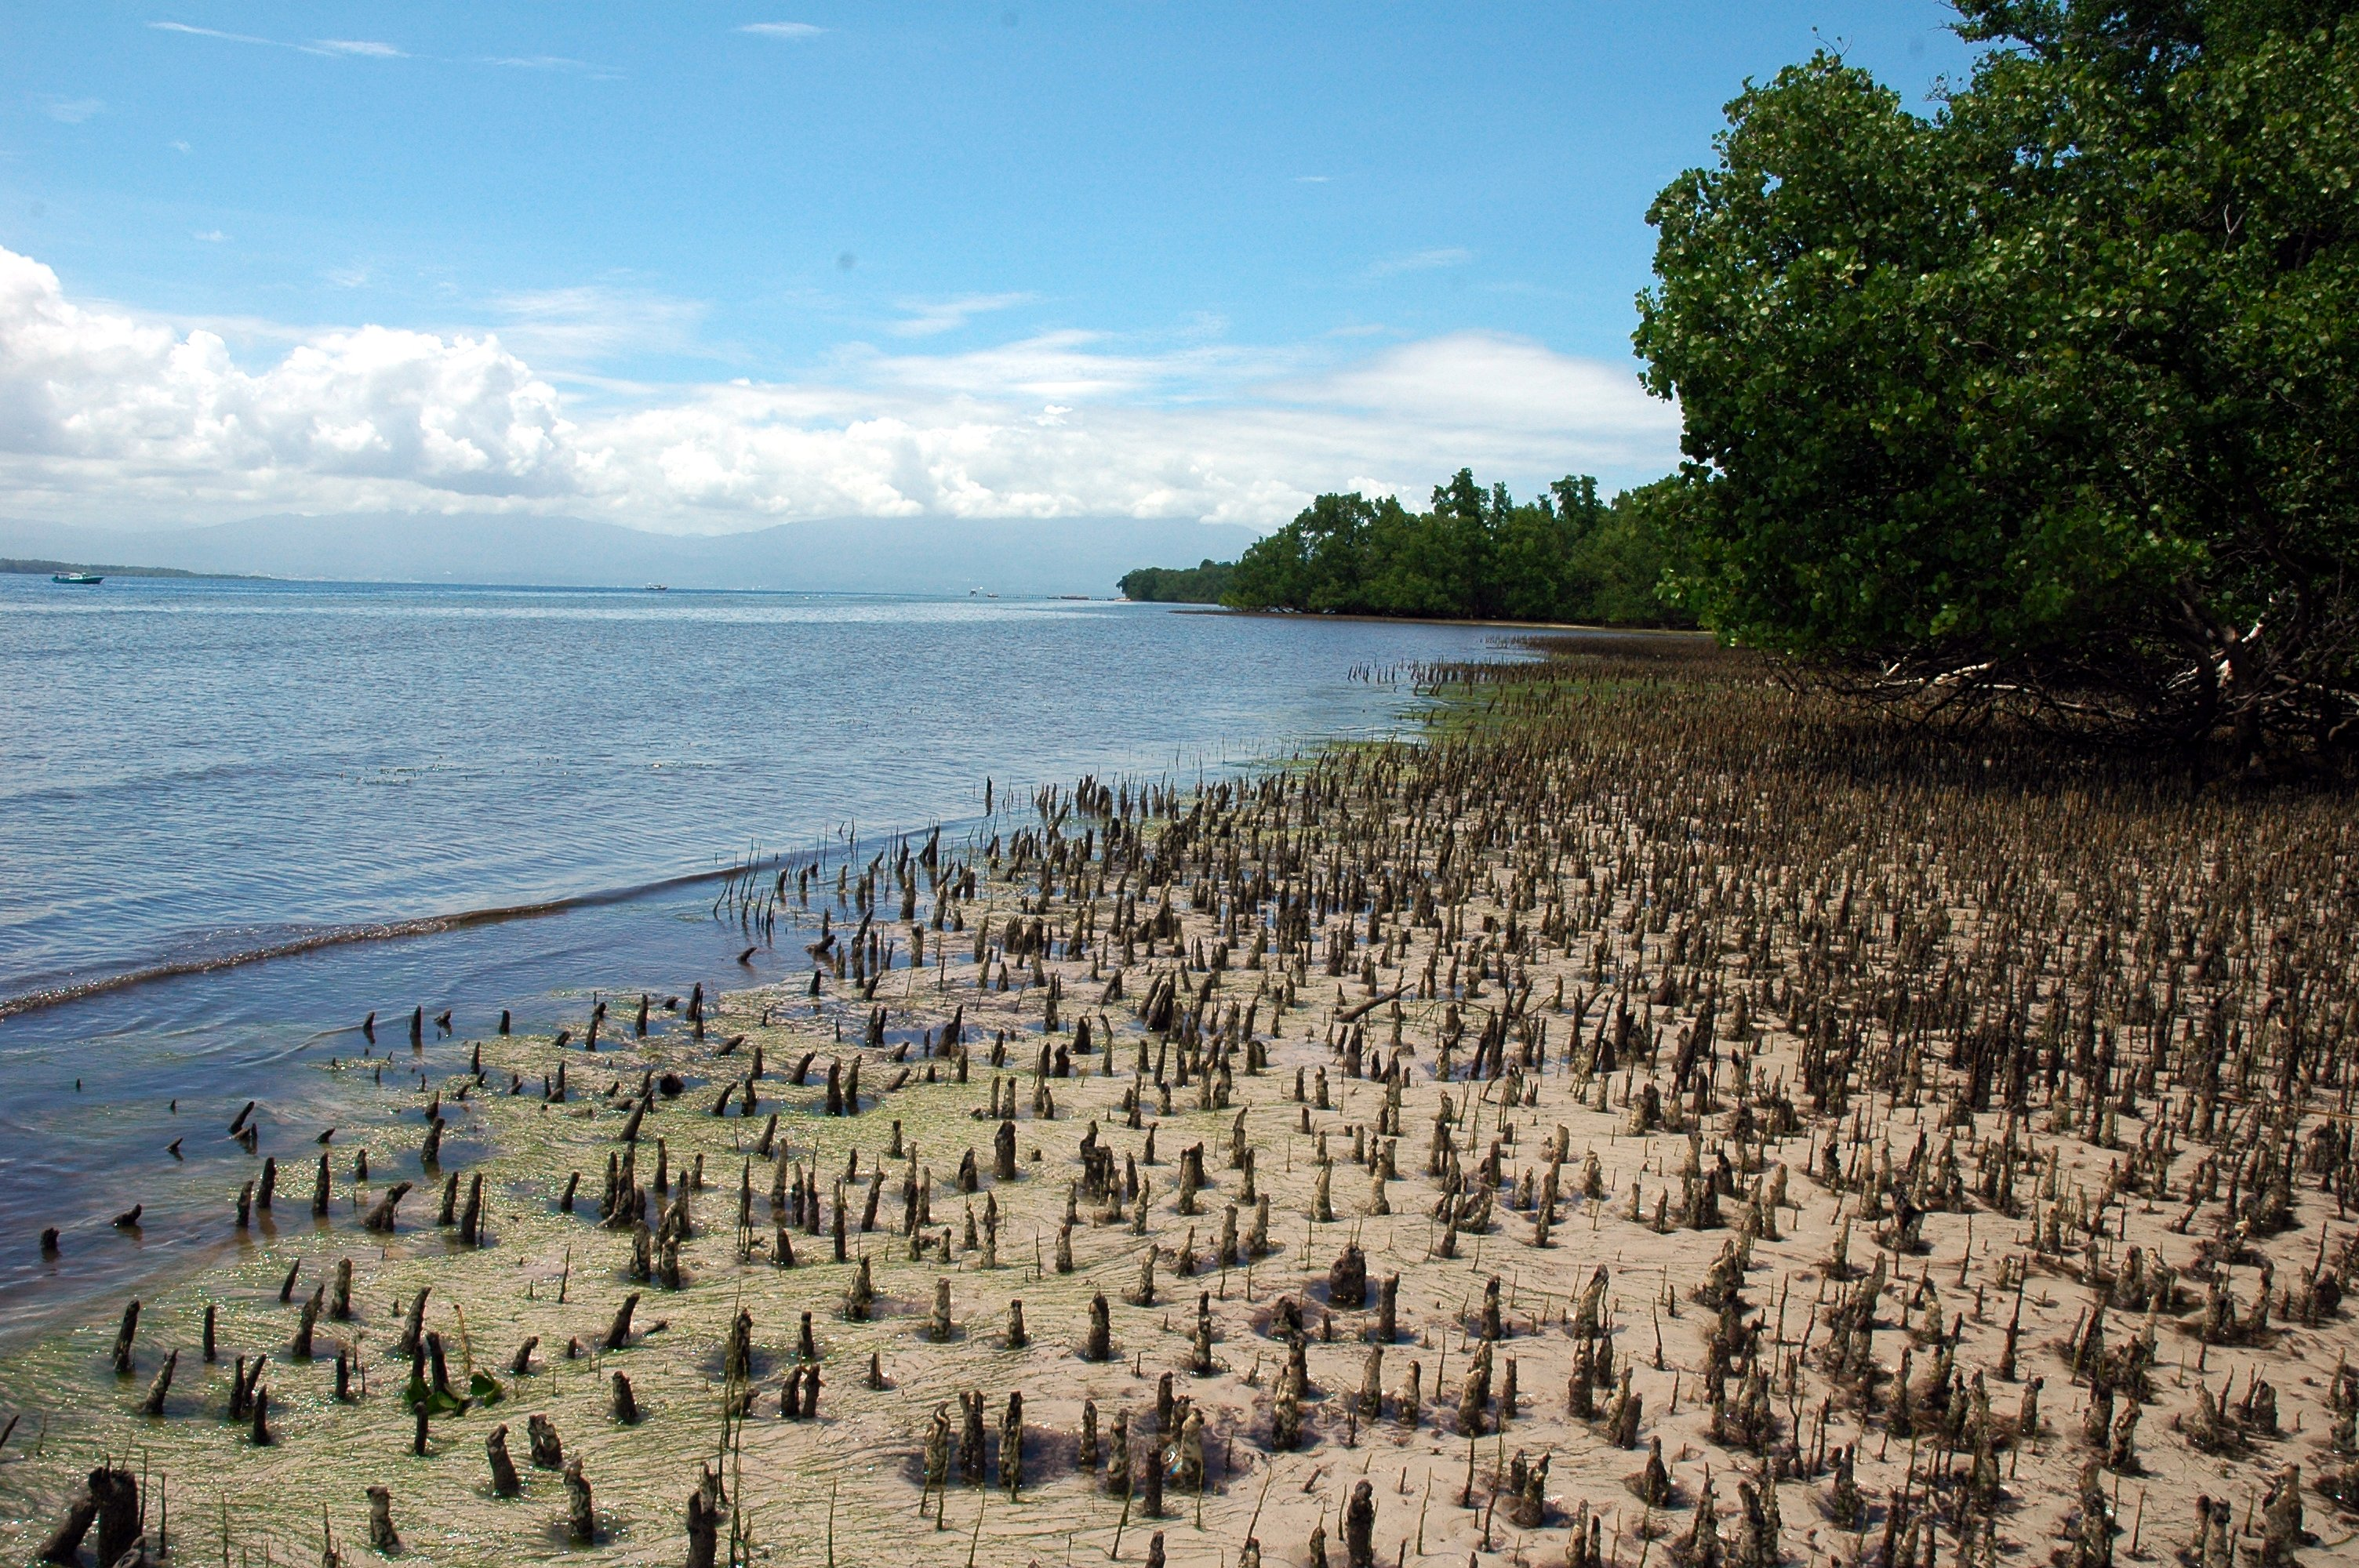 File:Bunaken_Mangrove_Coast on 2